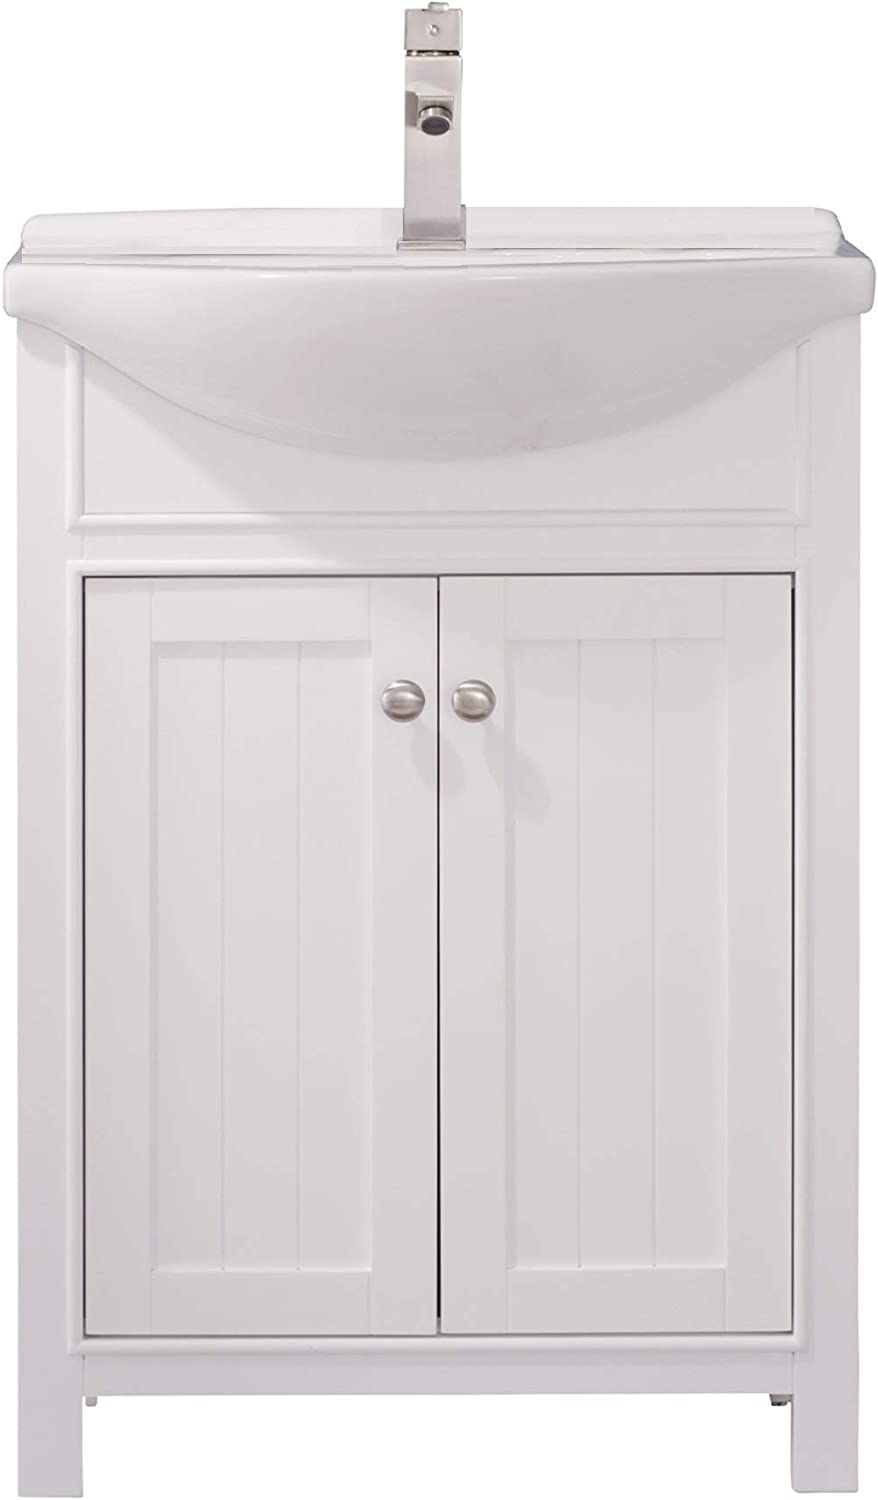 "Luca Kitchen & Bath LC24HWP Carson 24"" Bathroom Vanity Set in White Made with Hardwood and Integrated Porcelain Top"